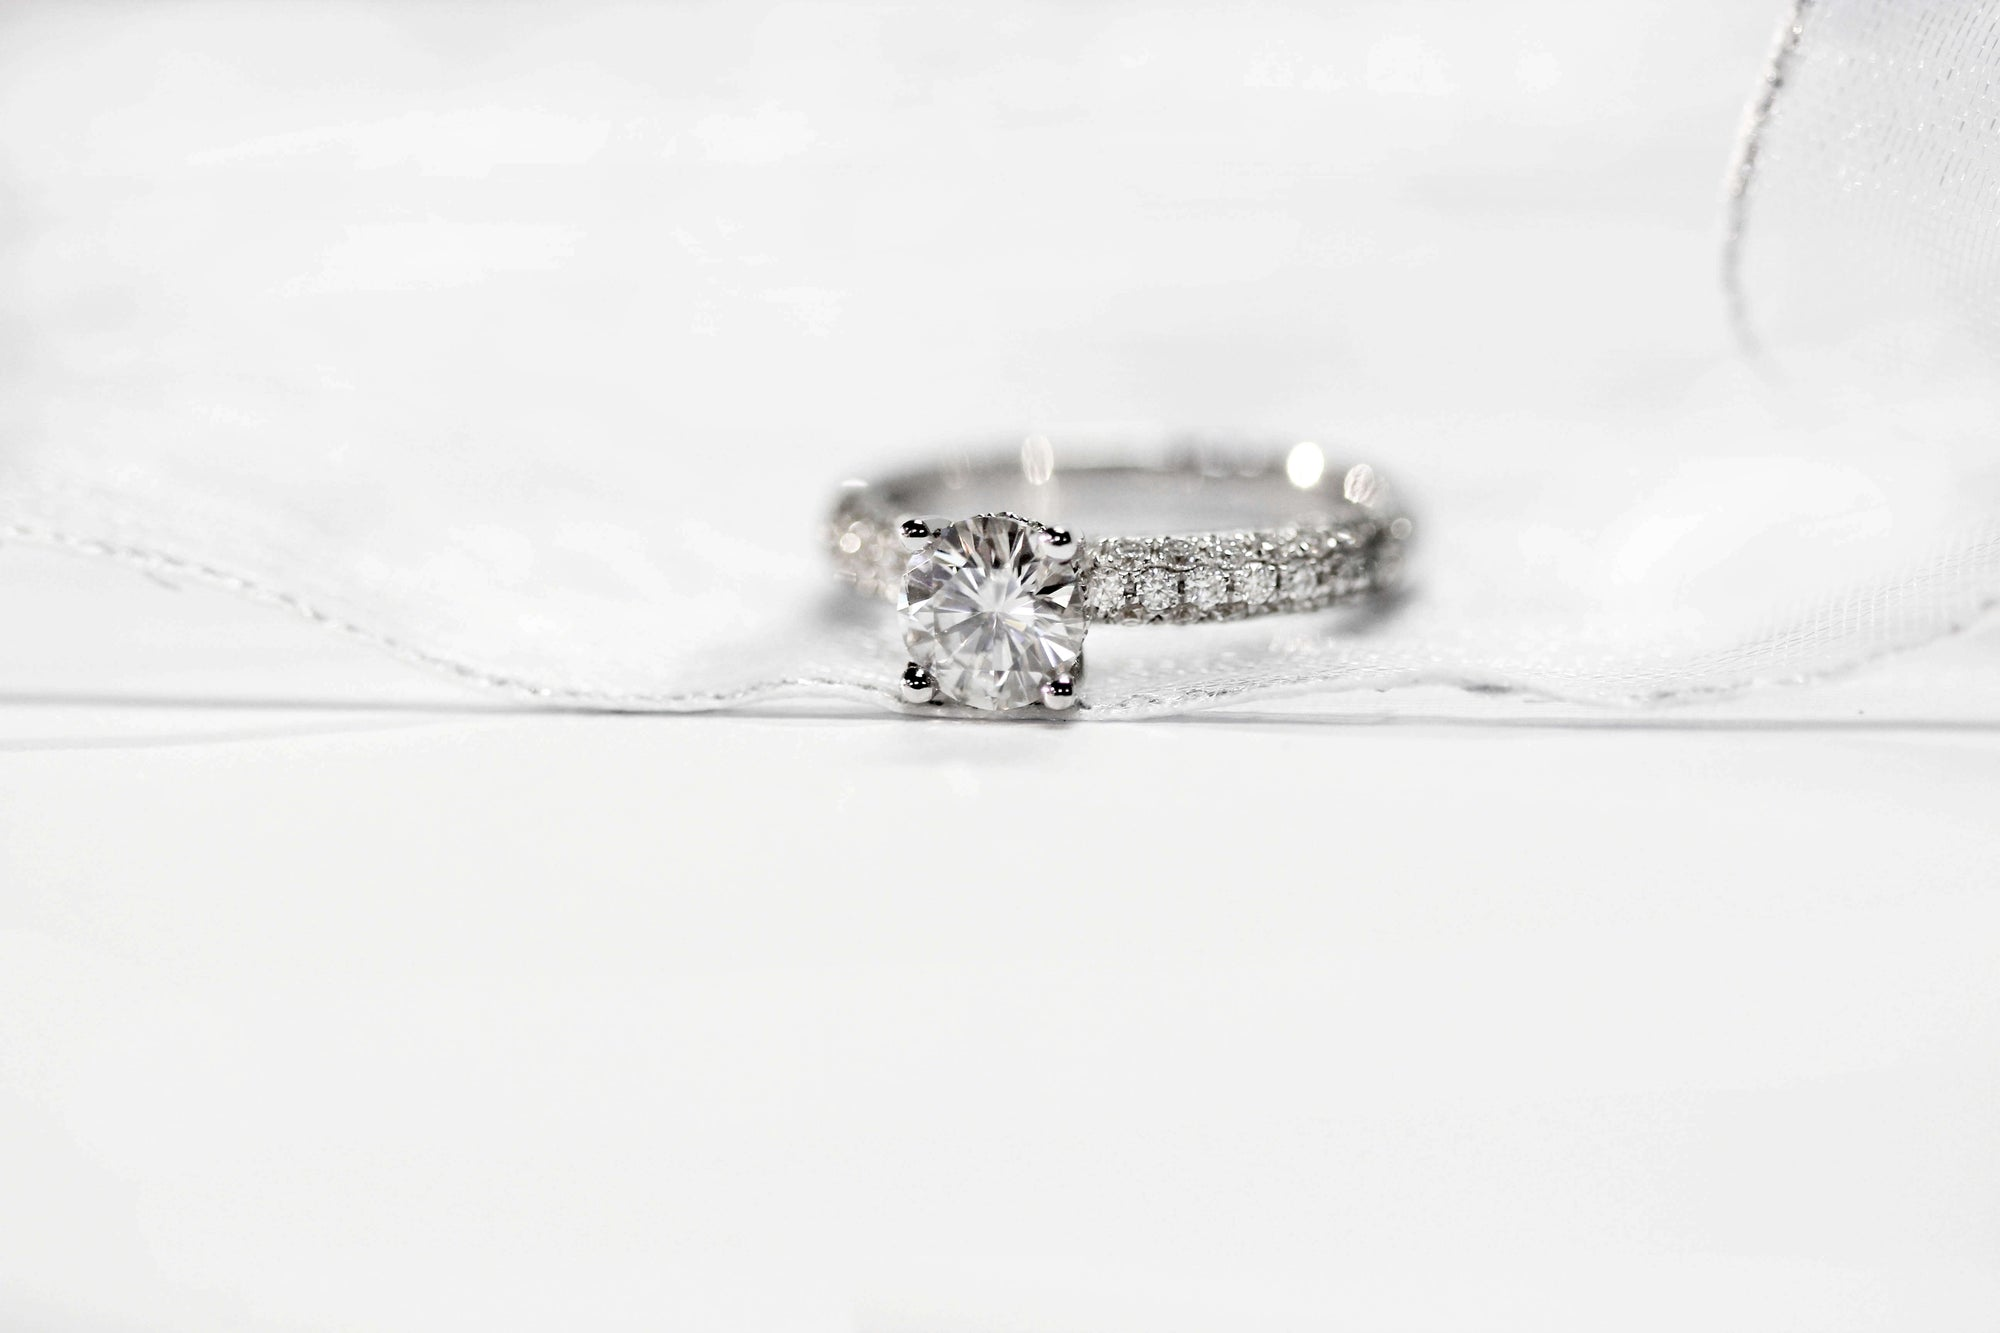 How to keep your Moissanite engagement ring clean